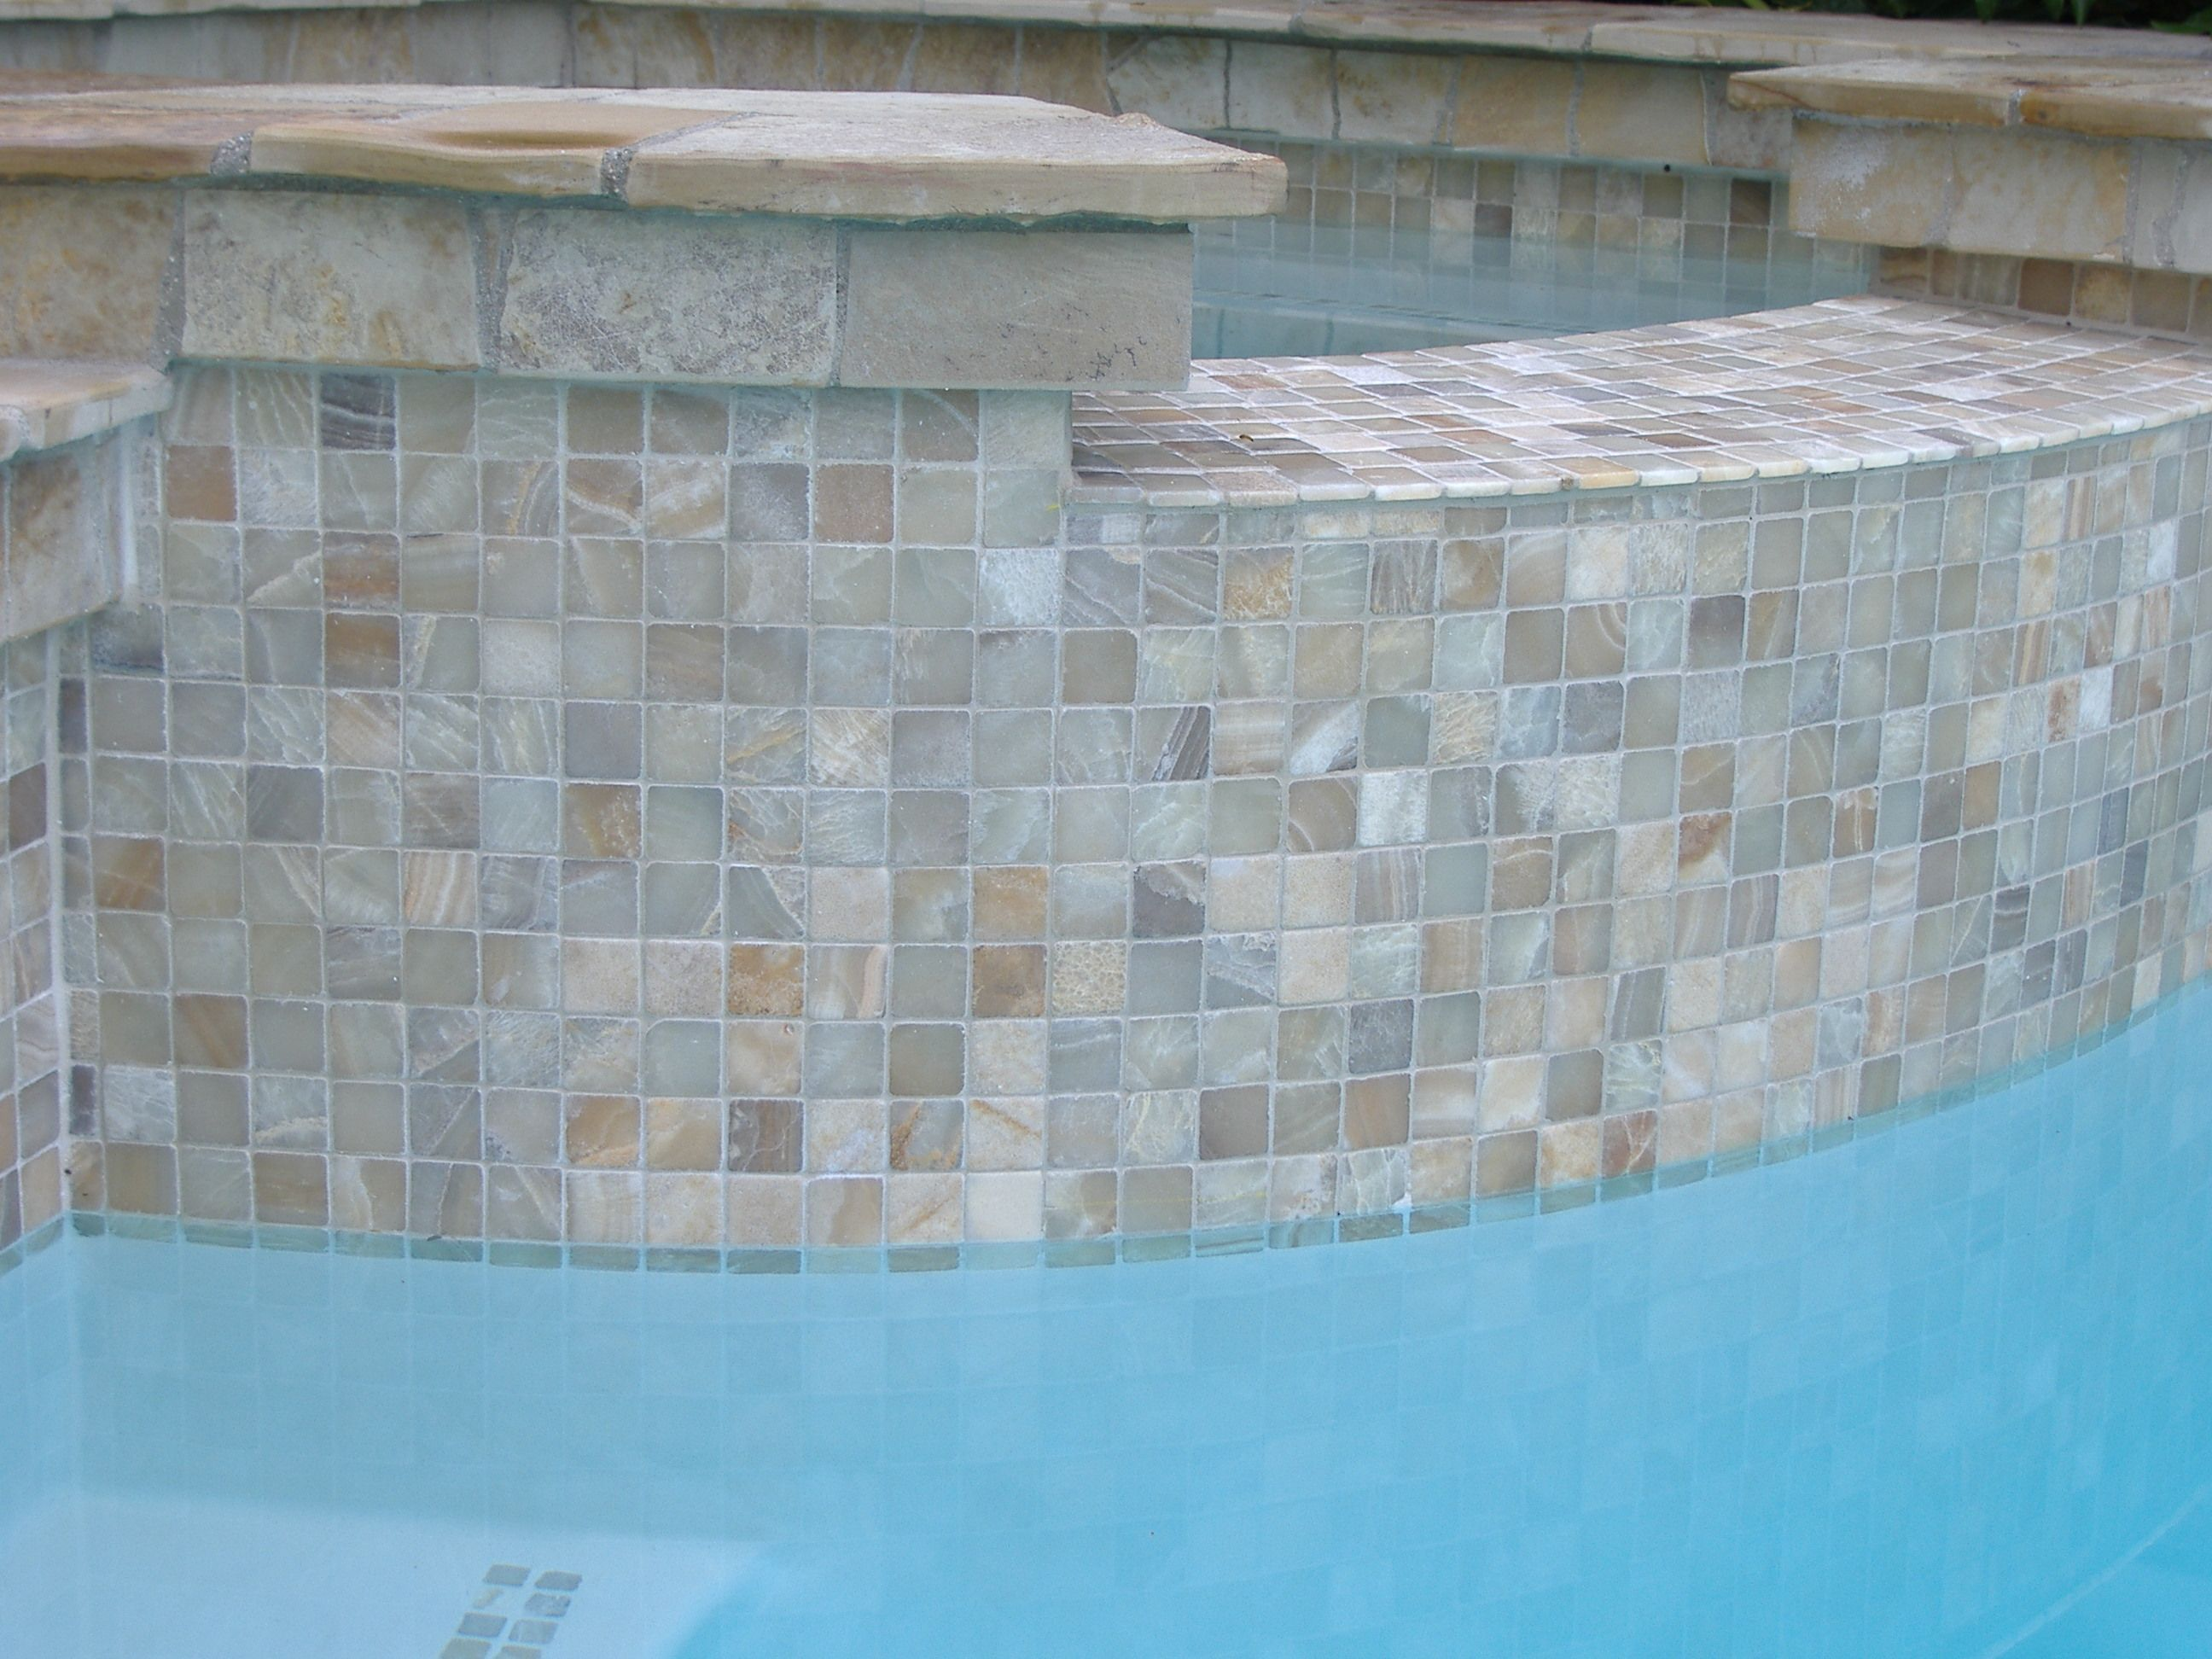 onyx 2 x 2 mosaic tiles by zen paradise inc natural stone pool tile swimming - Swimming Pool Tile Designs